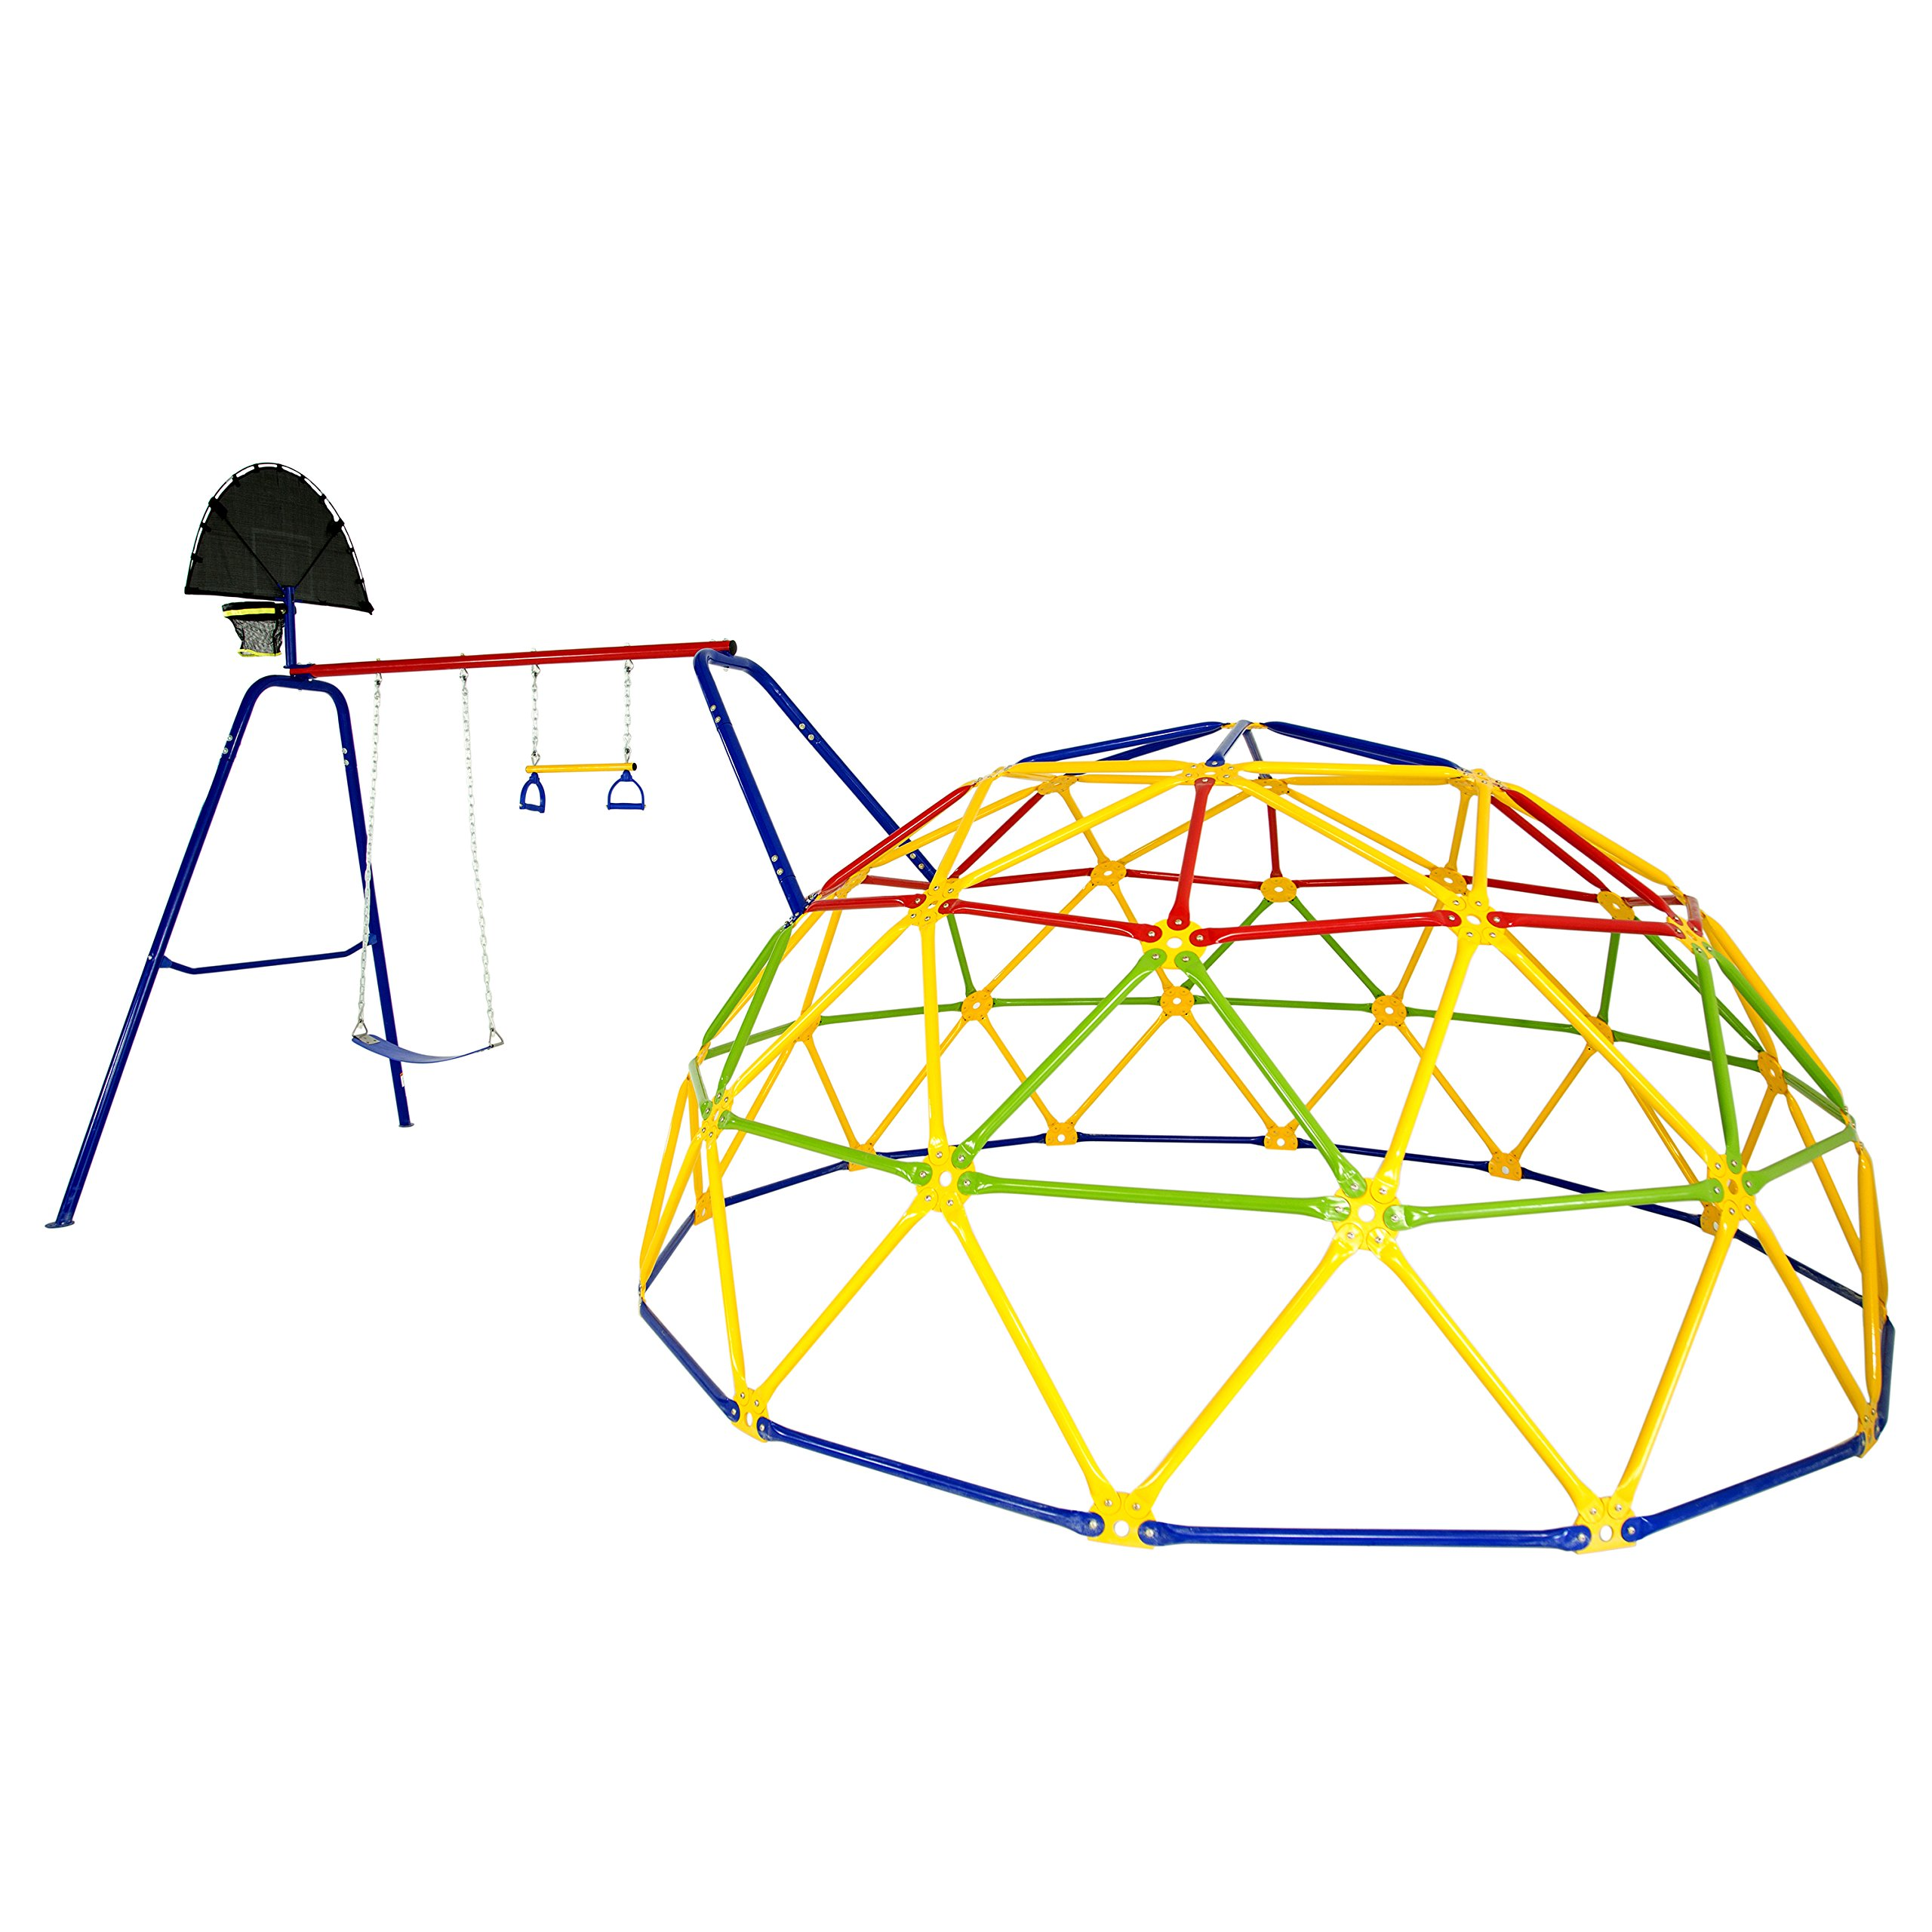 Skywalker Sports Geo Dome Climber with Swing Set by Skywalker Sports (Image #1)